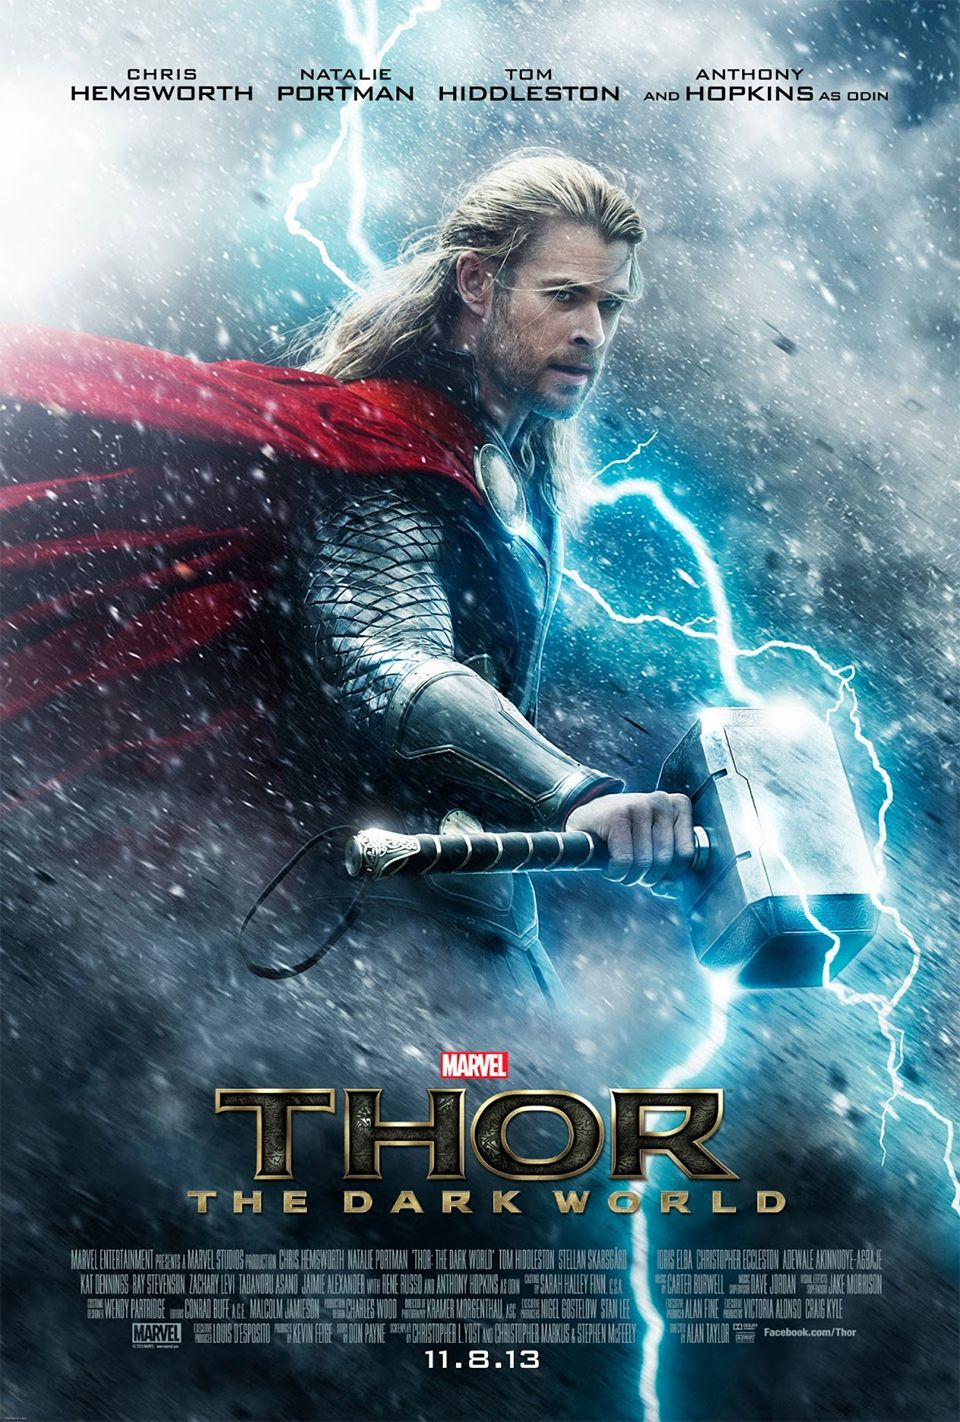 Google Image Result for http://mightymega.com/wp-content/uploads/2013/04/thor_dark_world_movie_poster_l.jpg